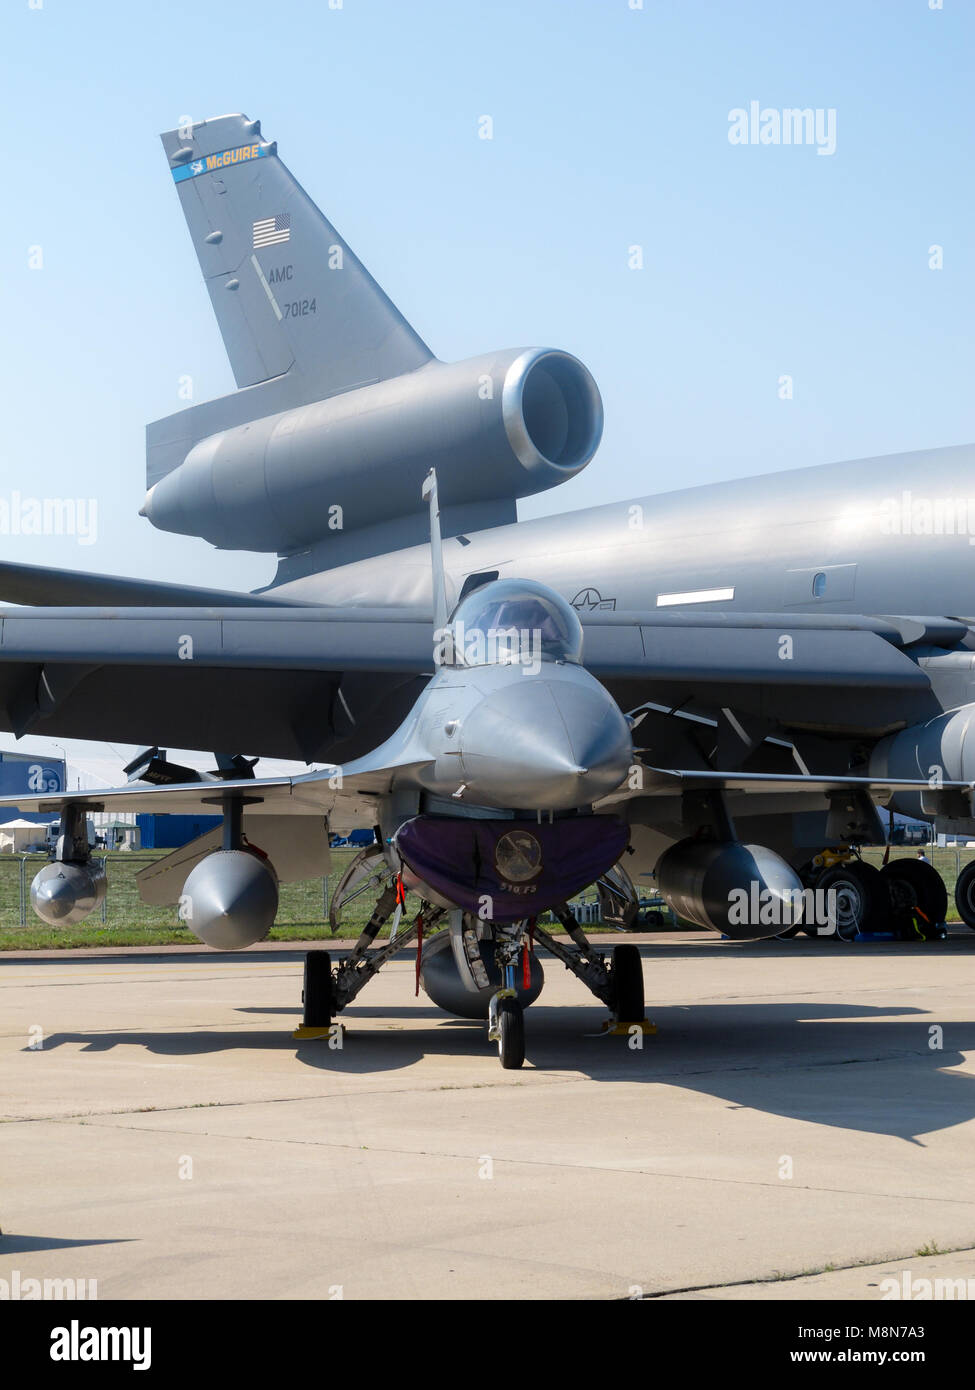 F-16 fighter compared to USAF McGuire kc-10a, International Aviation & Space Salon in Moscow MAKS. ZHUKOWSKY, - Stock Image